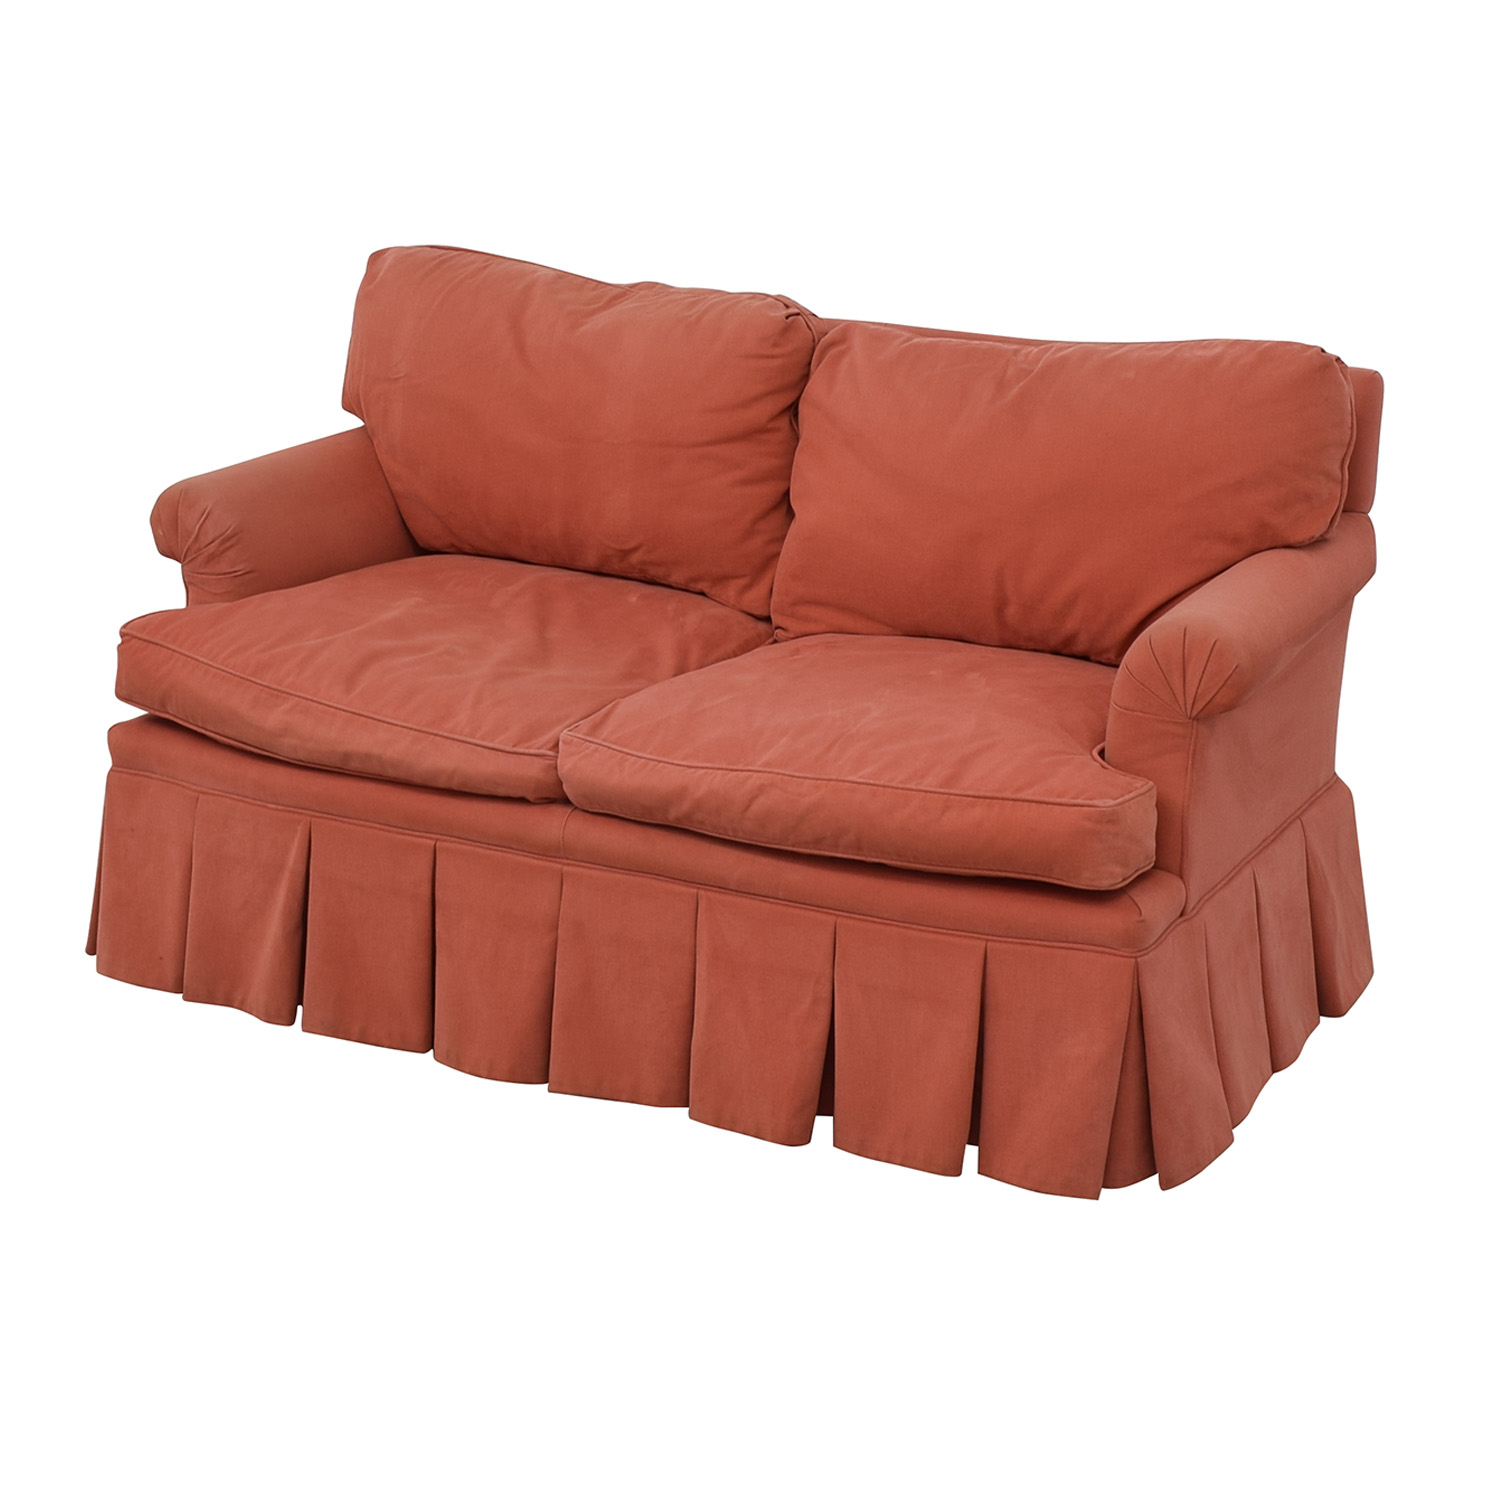 62% OFF - Laura Ashley Loveseat / Sofas